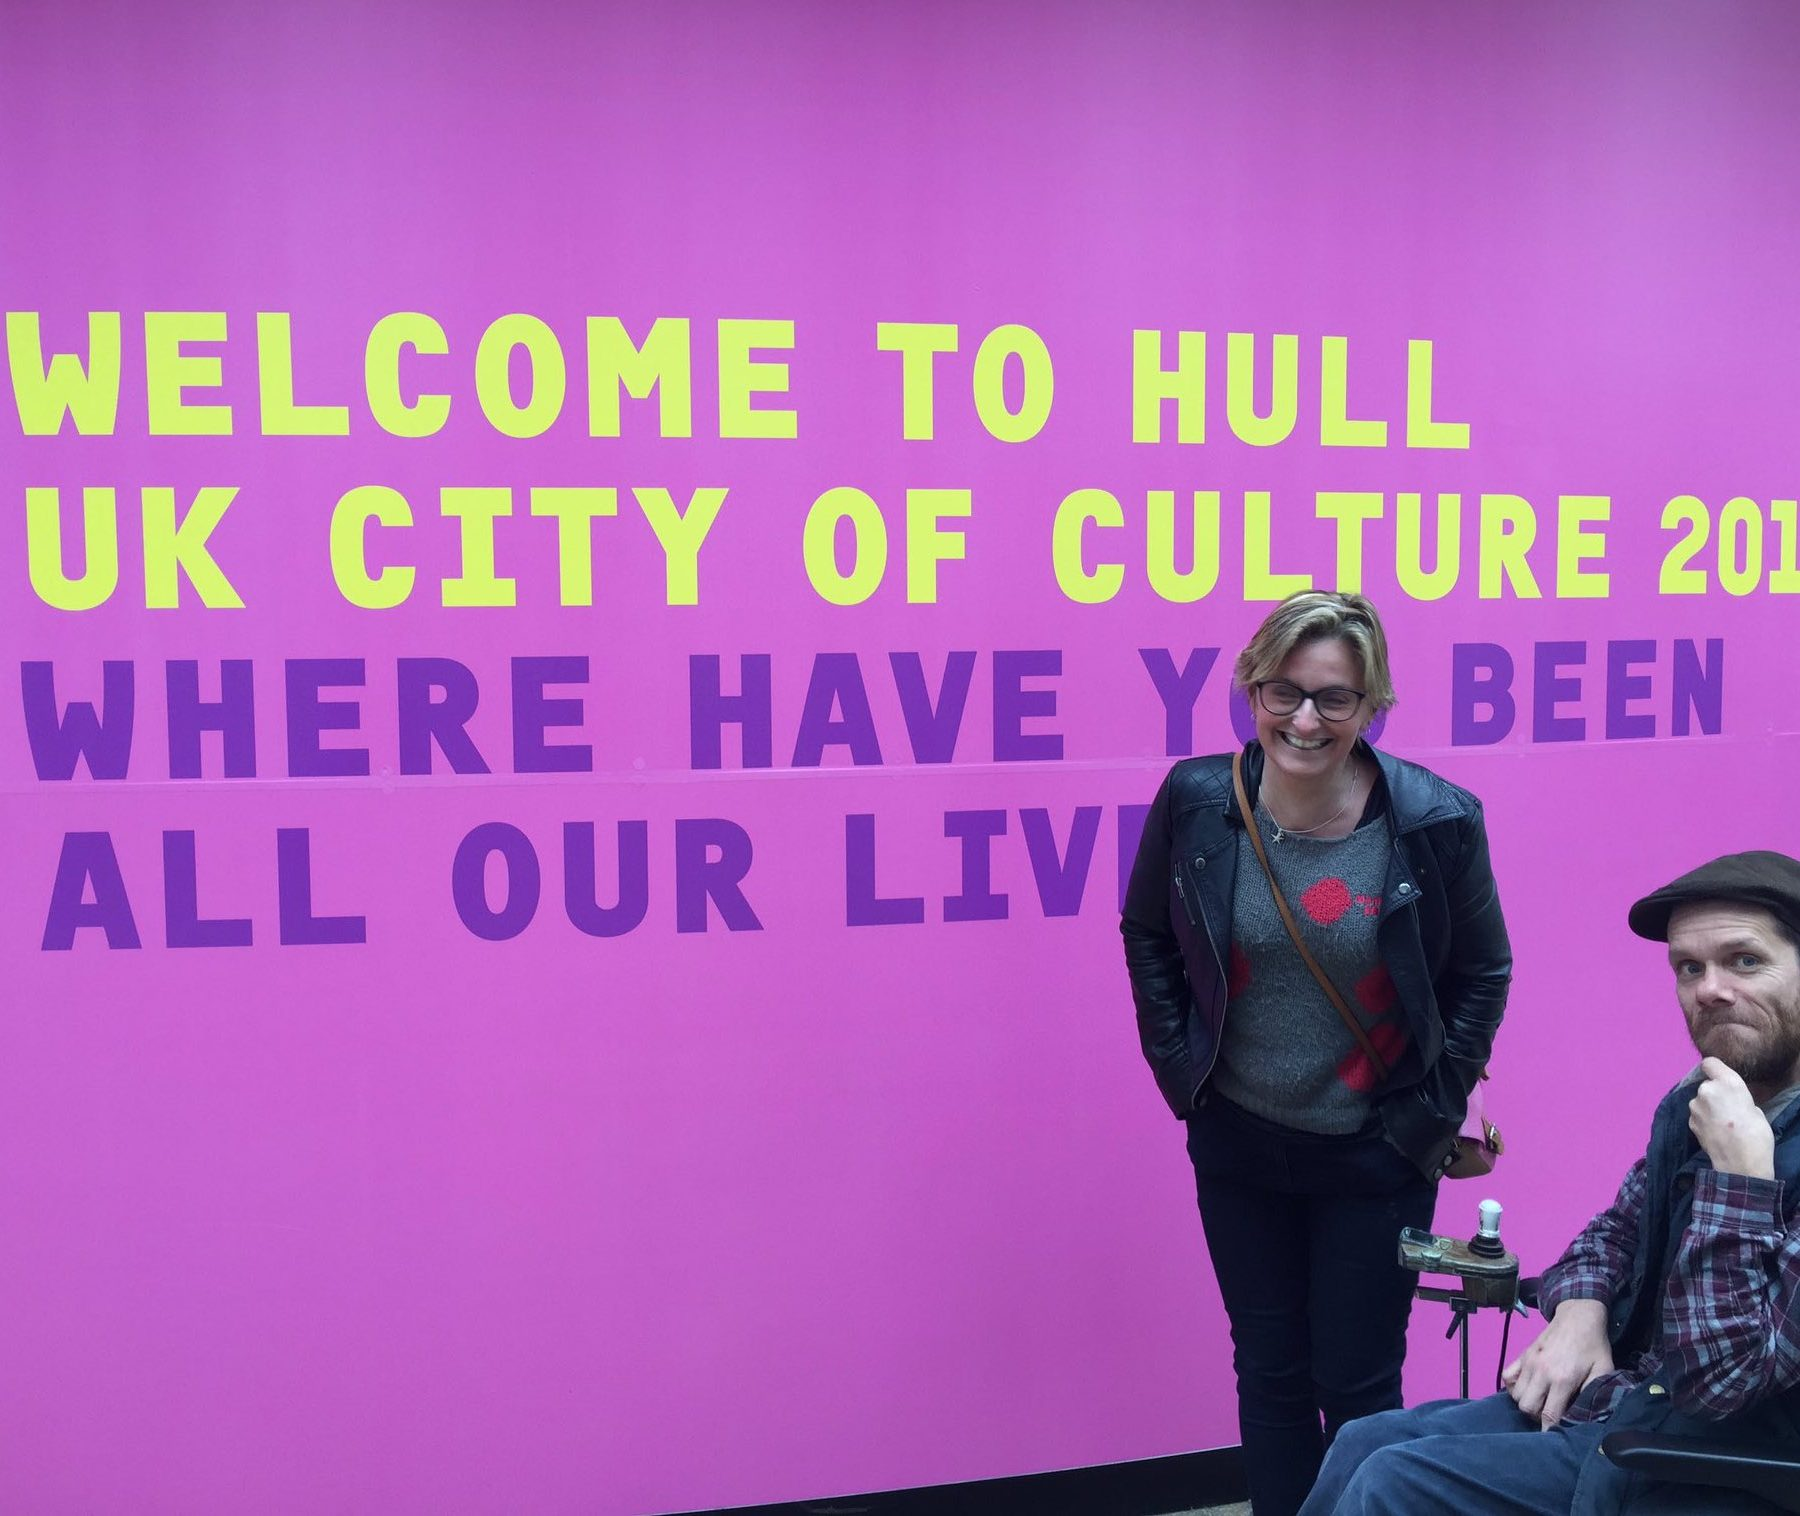 Jamie and Claire in front of a big purple sign that reads 'Welcome to Hull UK city of culture 2017. Where have you been all our lives?'